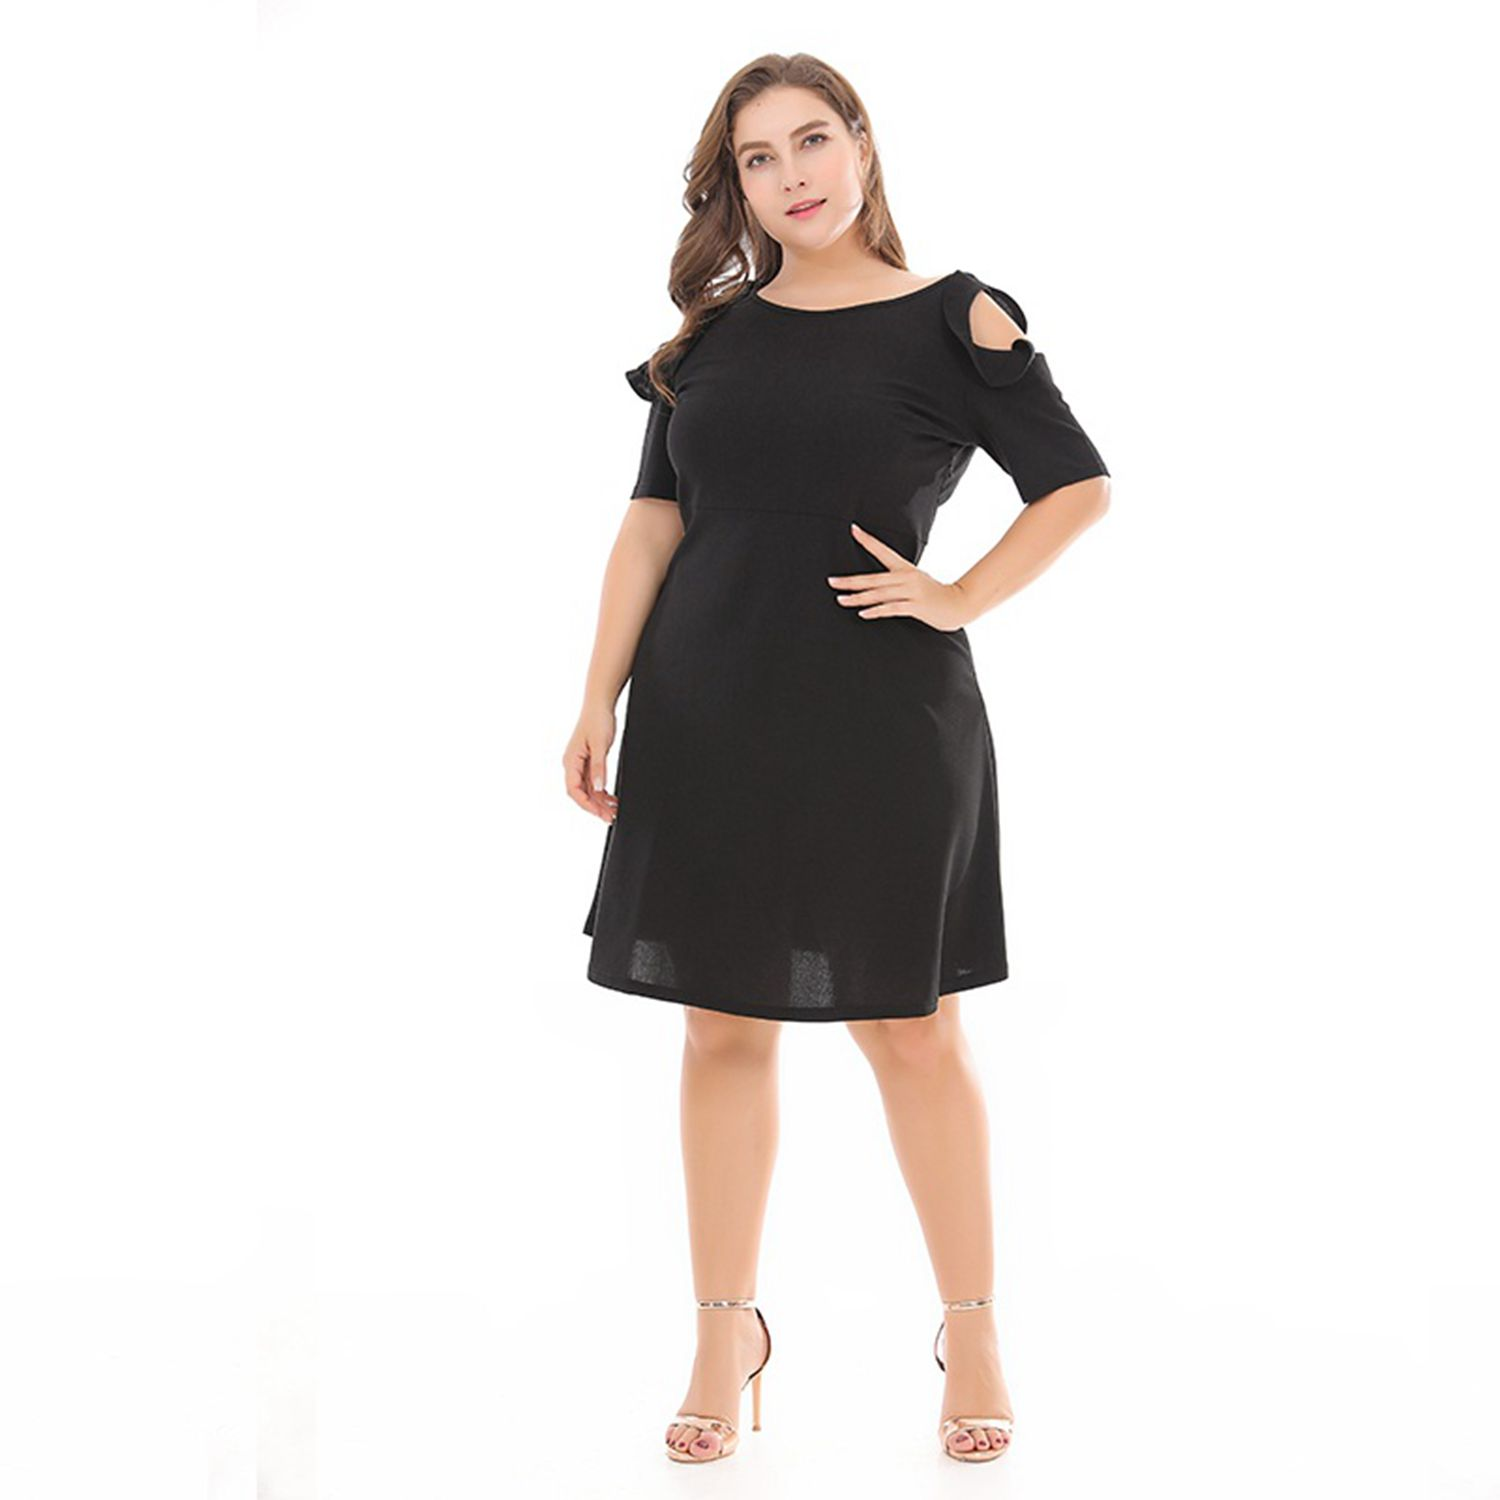 Summer new large size dress women show slim strapless hollow knit